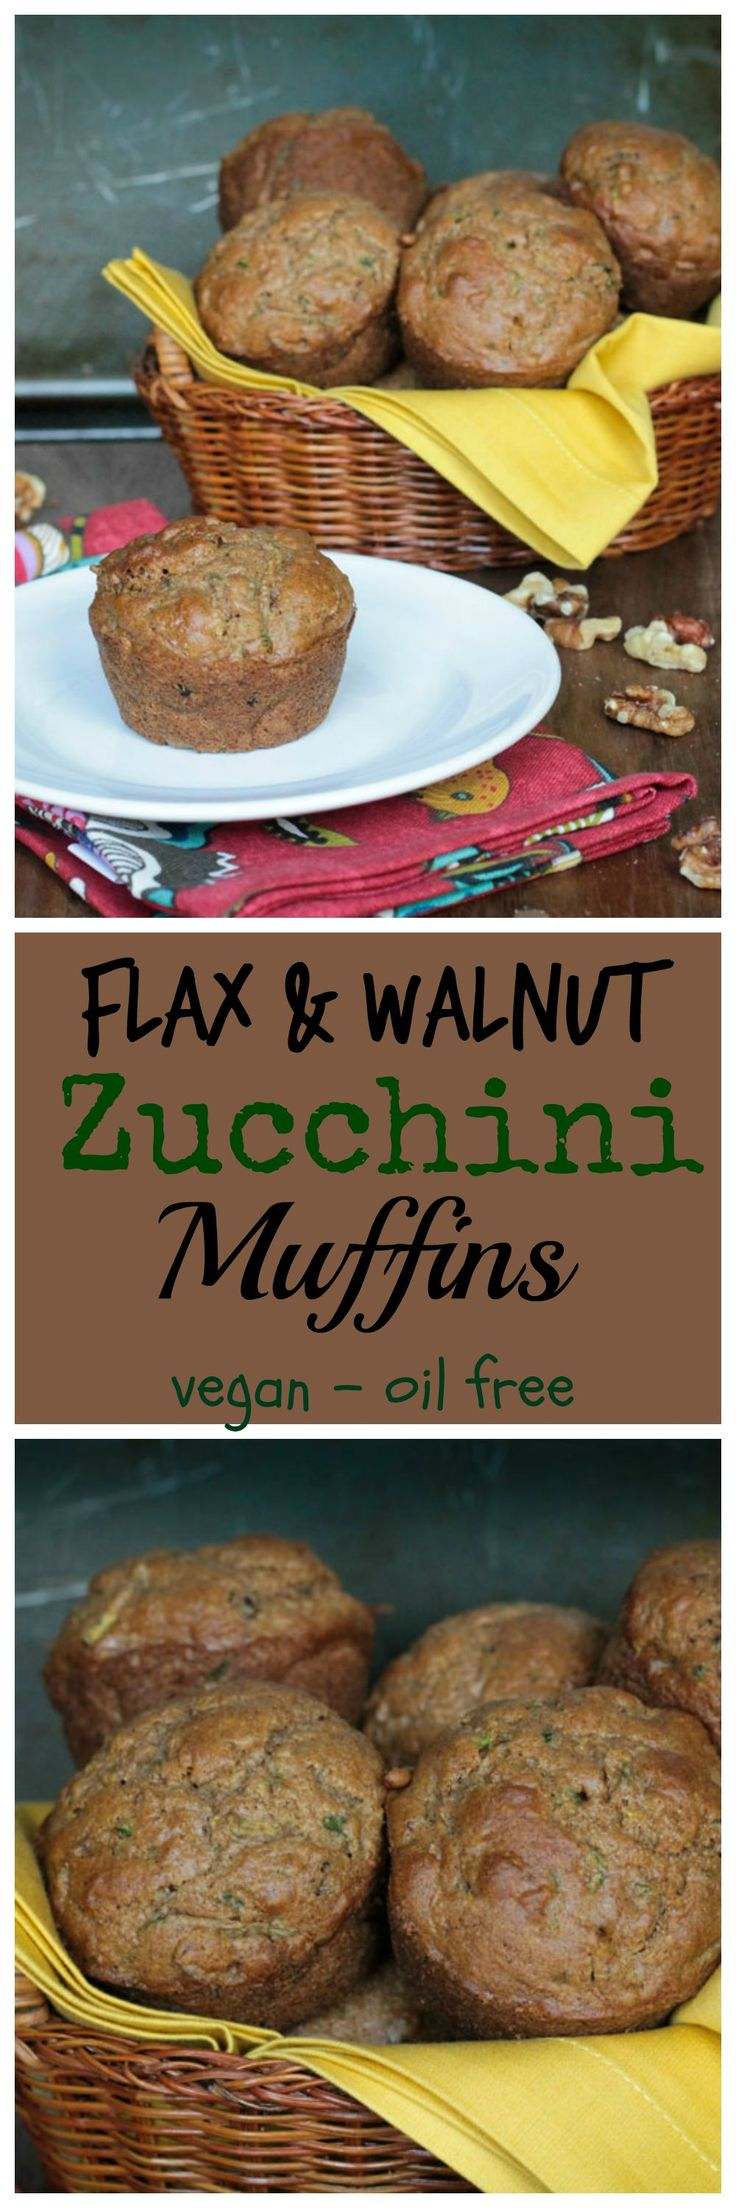 Flax & Walnut Zucchini Muffins - wholesome muffins, lightly sweetened, and perfect for a breakfast or a snack any time of day! #vegan #muffins #zucchini #flax #breakfast #snack #healthy